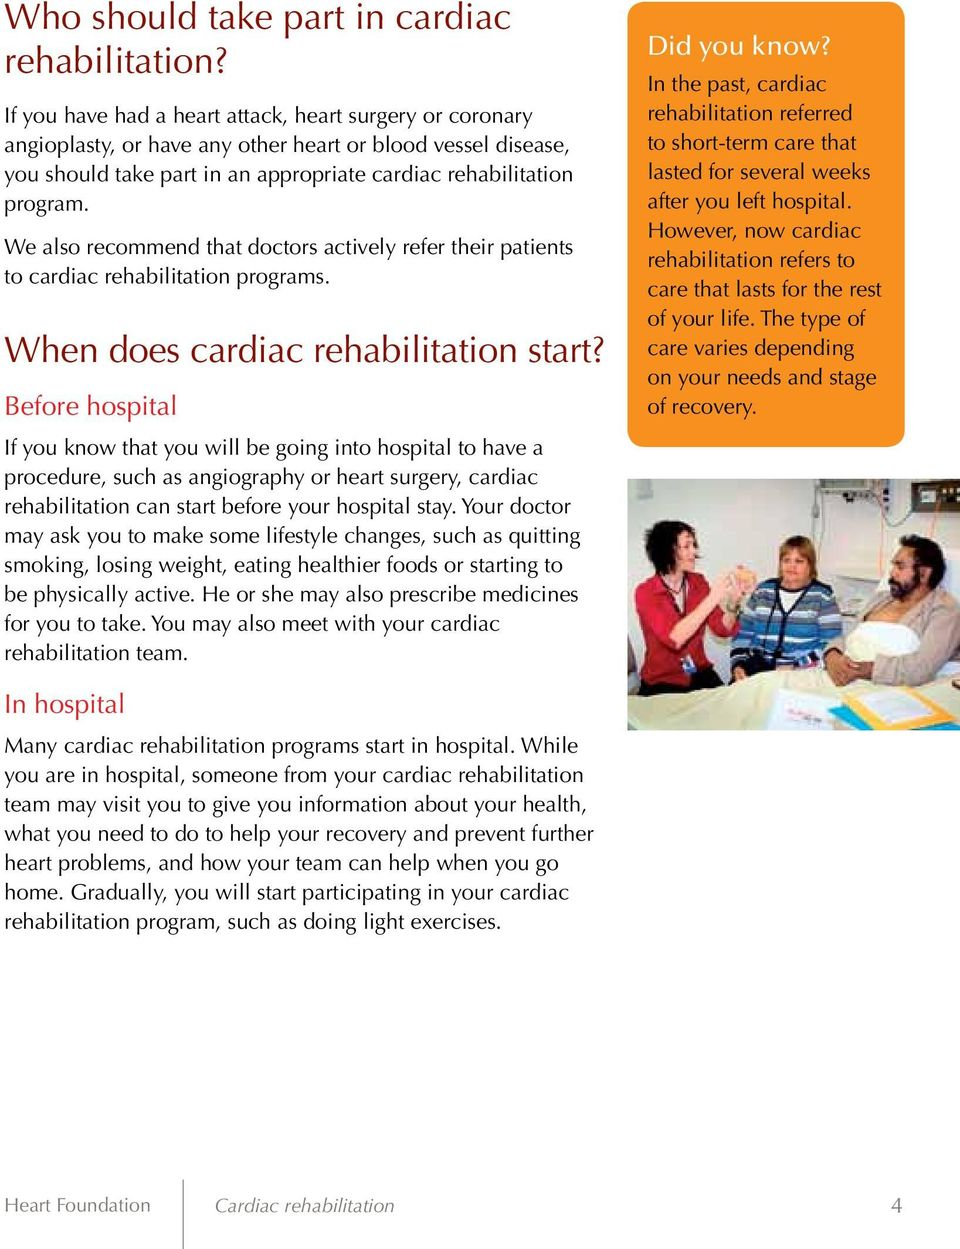 We also recommend that doctors actively refer their patients to cardiac rehabilitation programs. When does cardiac rehabilitation start?